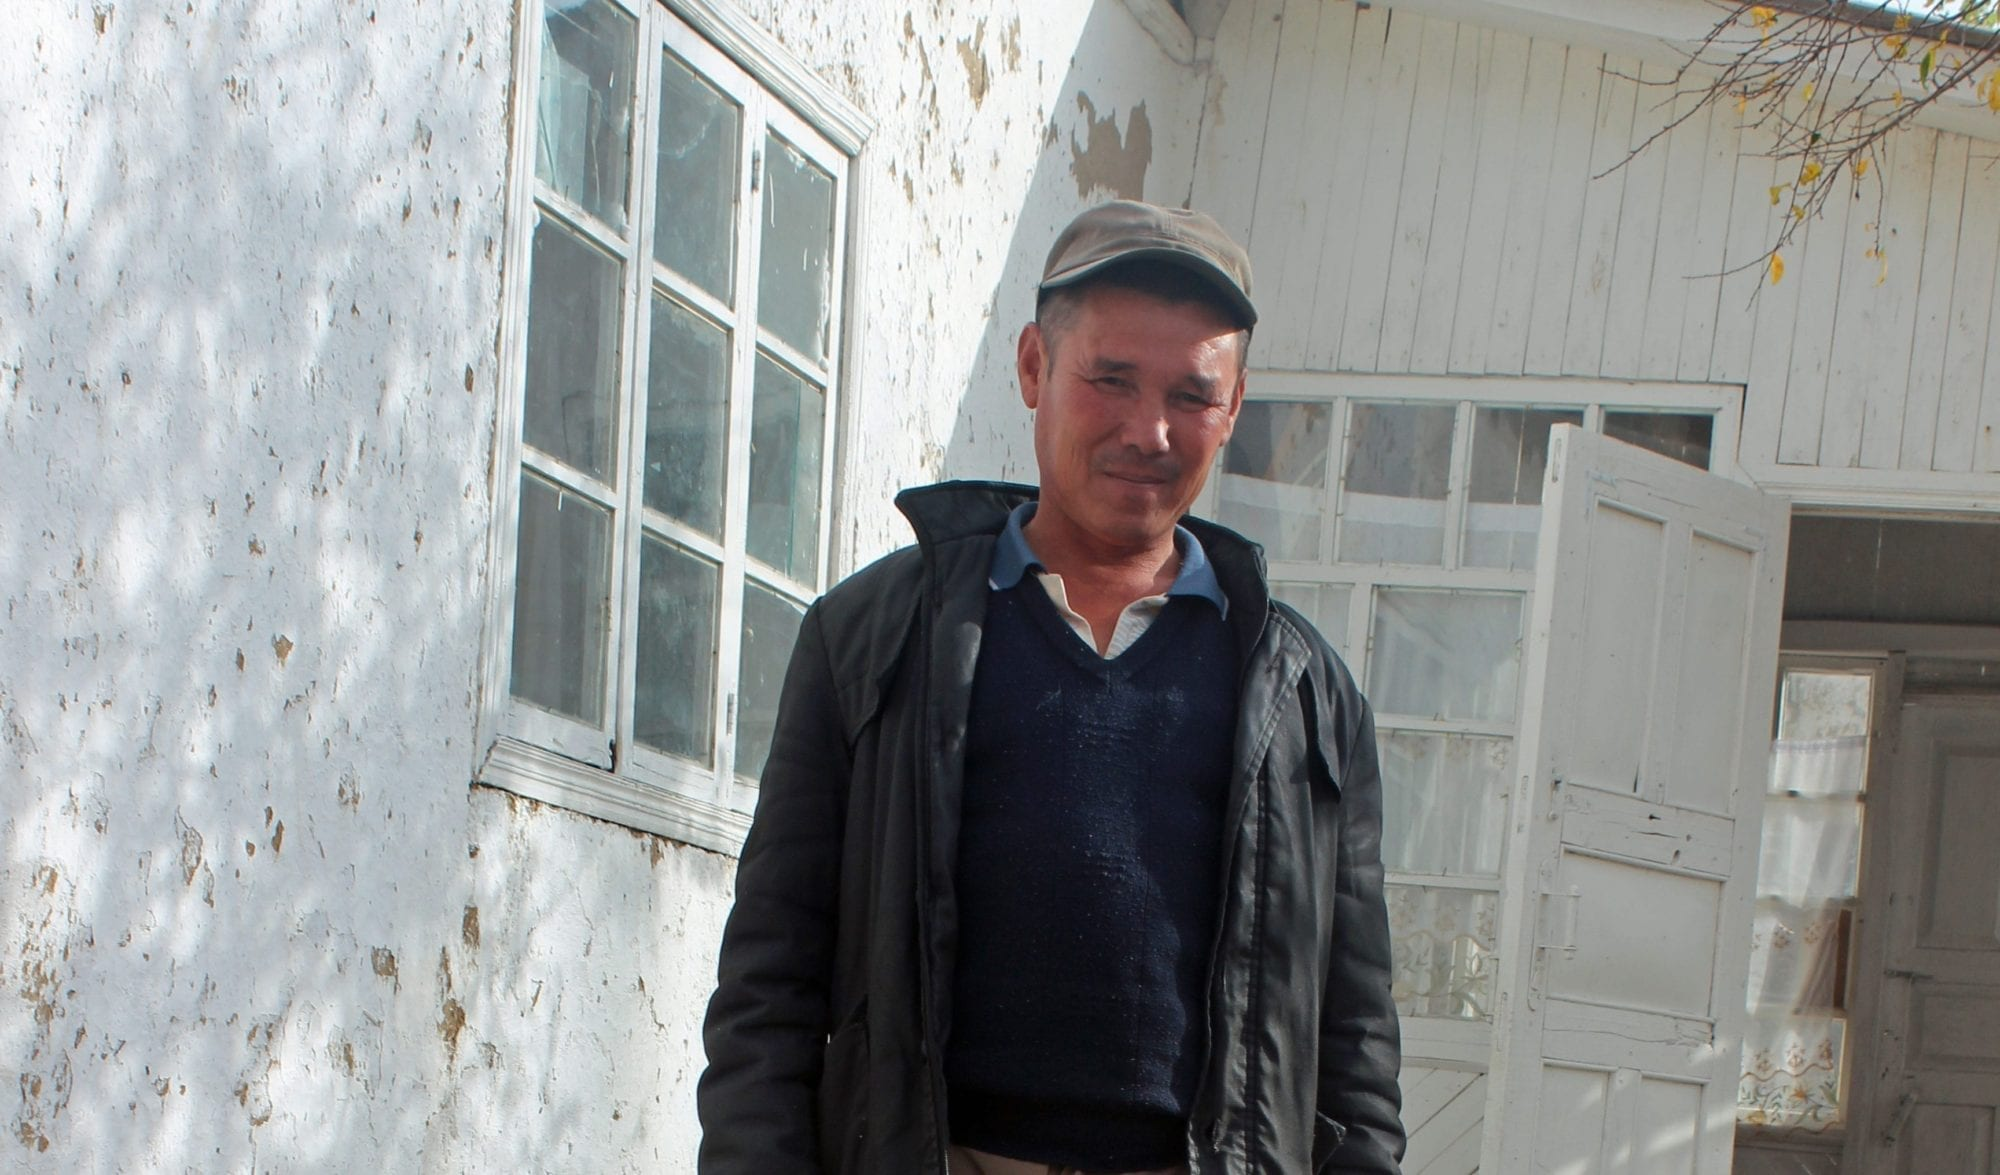 Kyrgyz Worker in Kazakhstan Paid $100 for 6 Months' Work